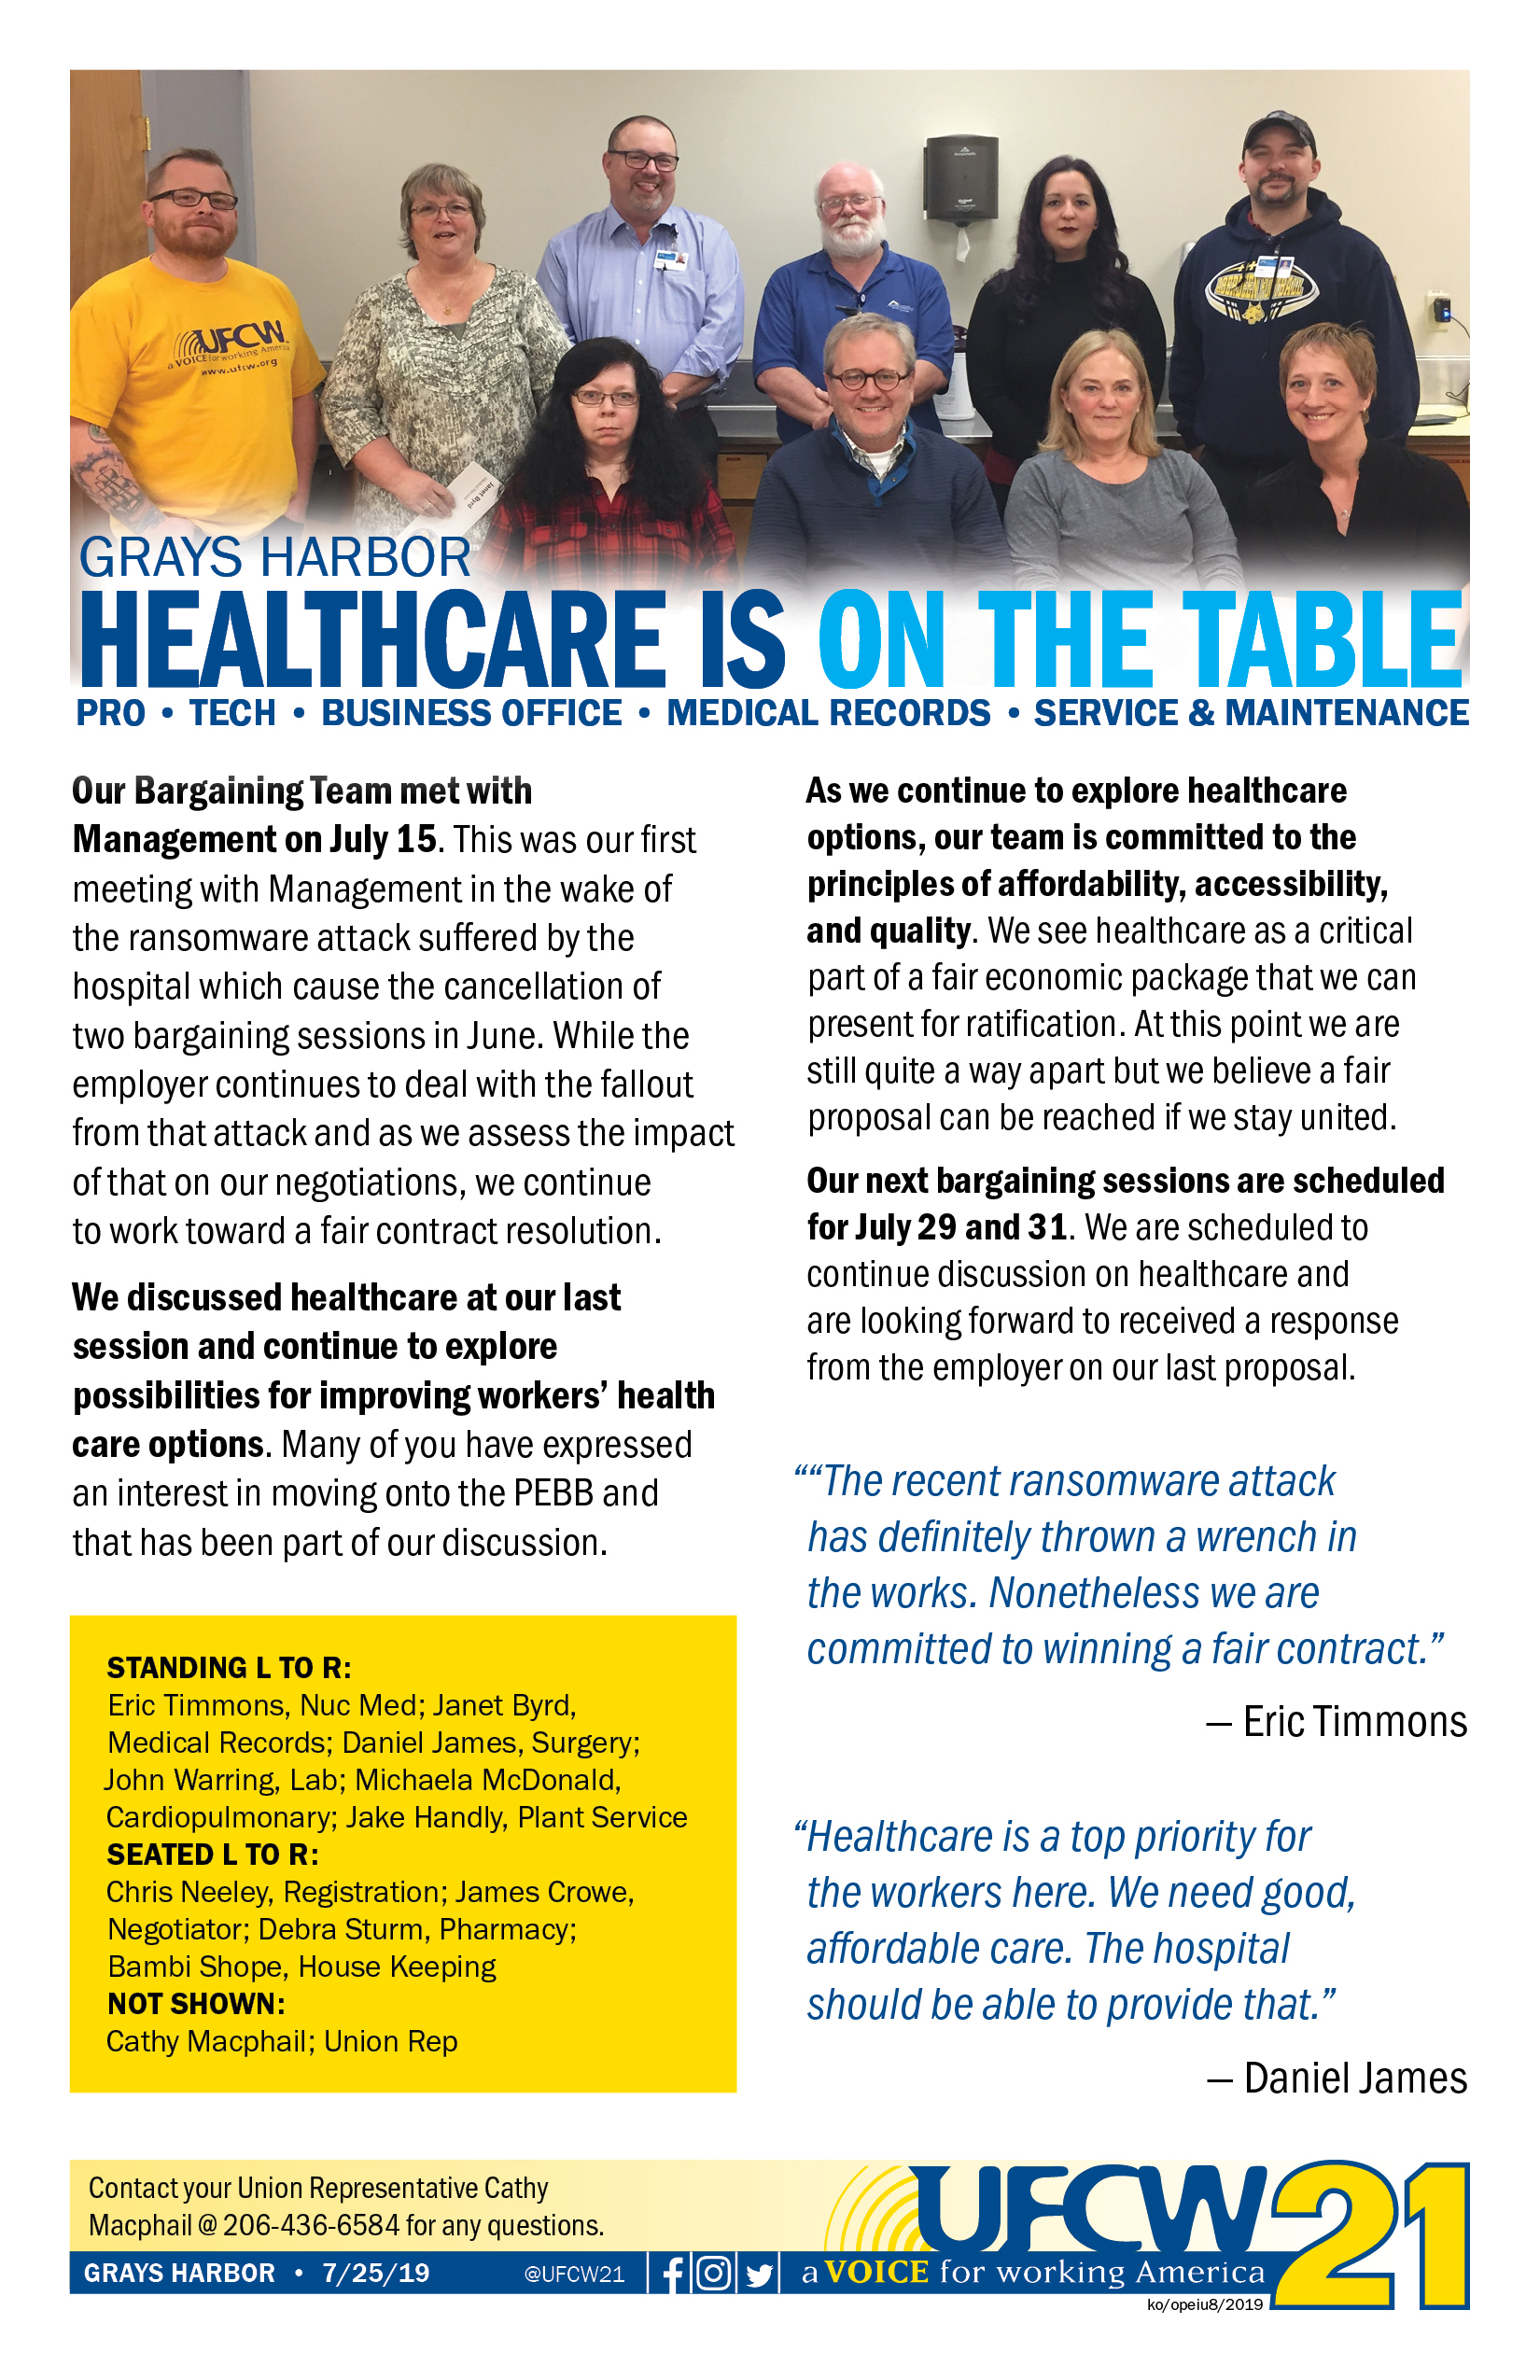 Grays Harbor - Healthcare Is On The Table — UFCW 21